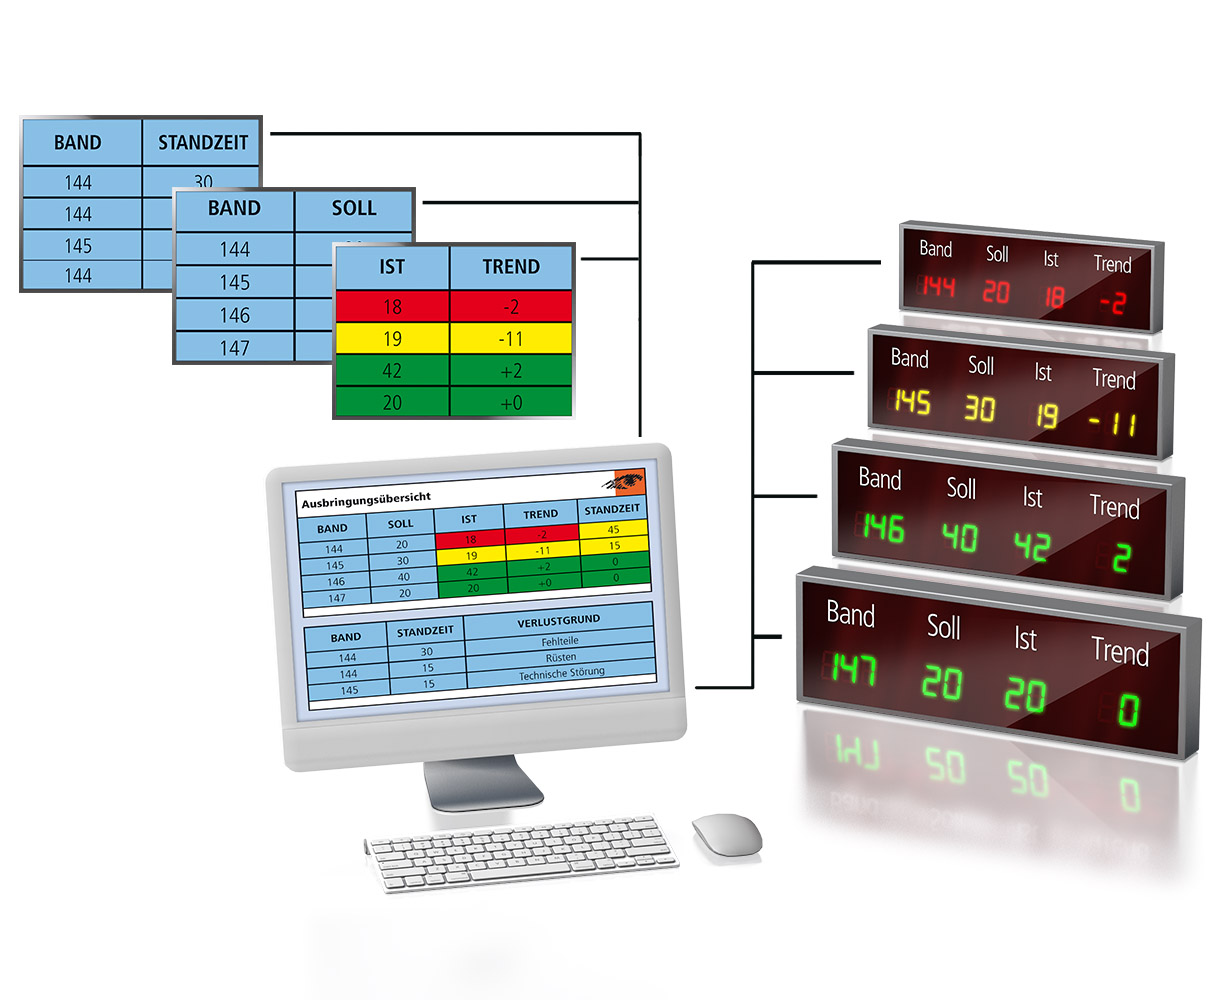 Visualization system for the control of standard monitors and LED large display